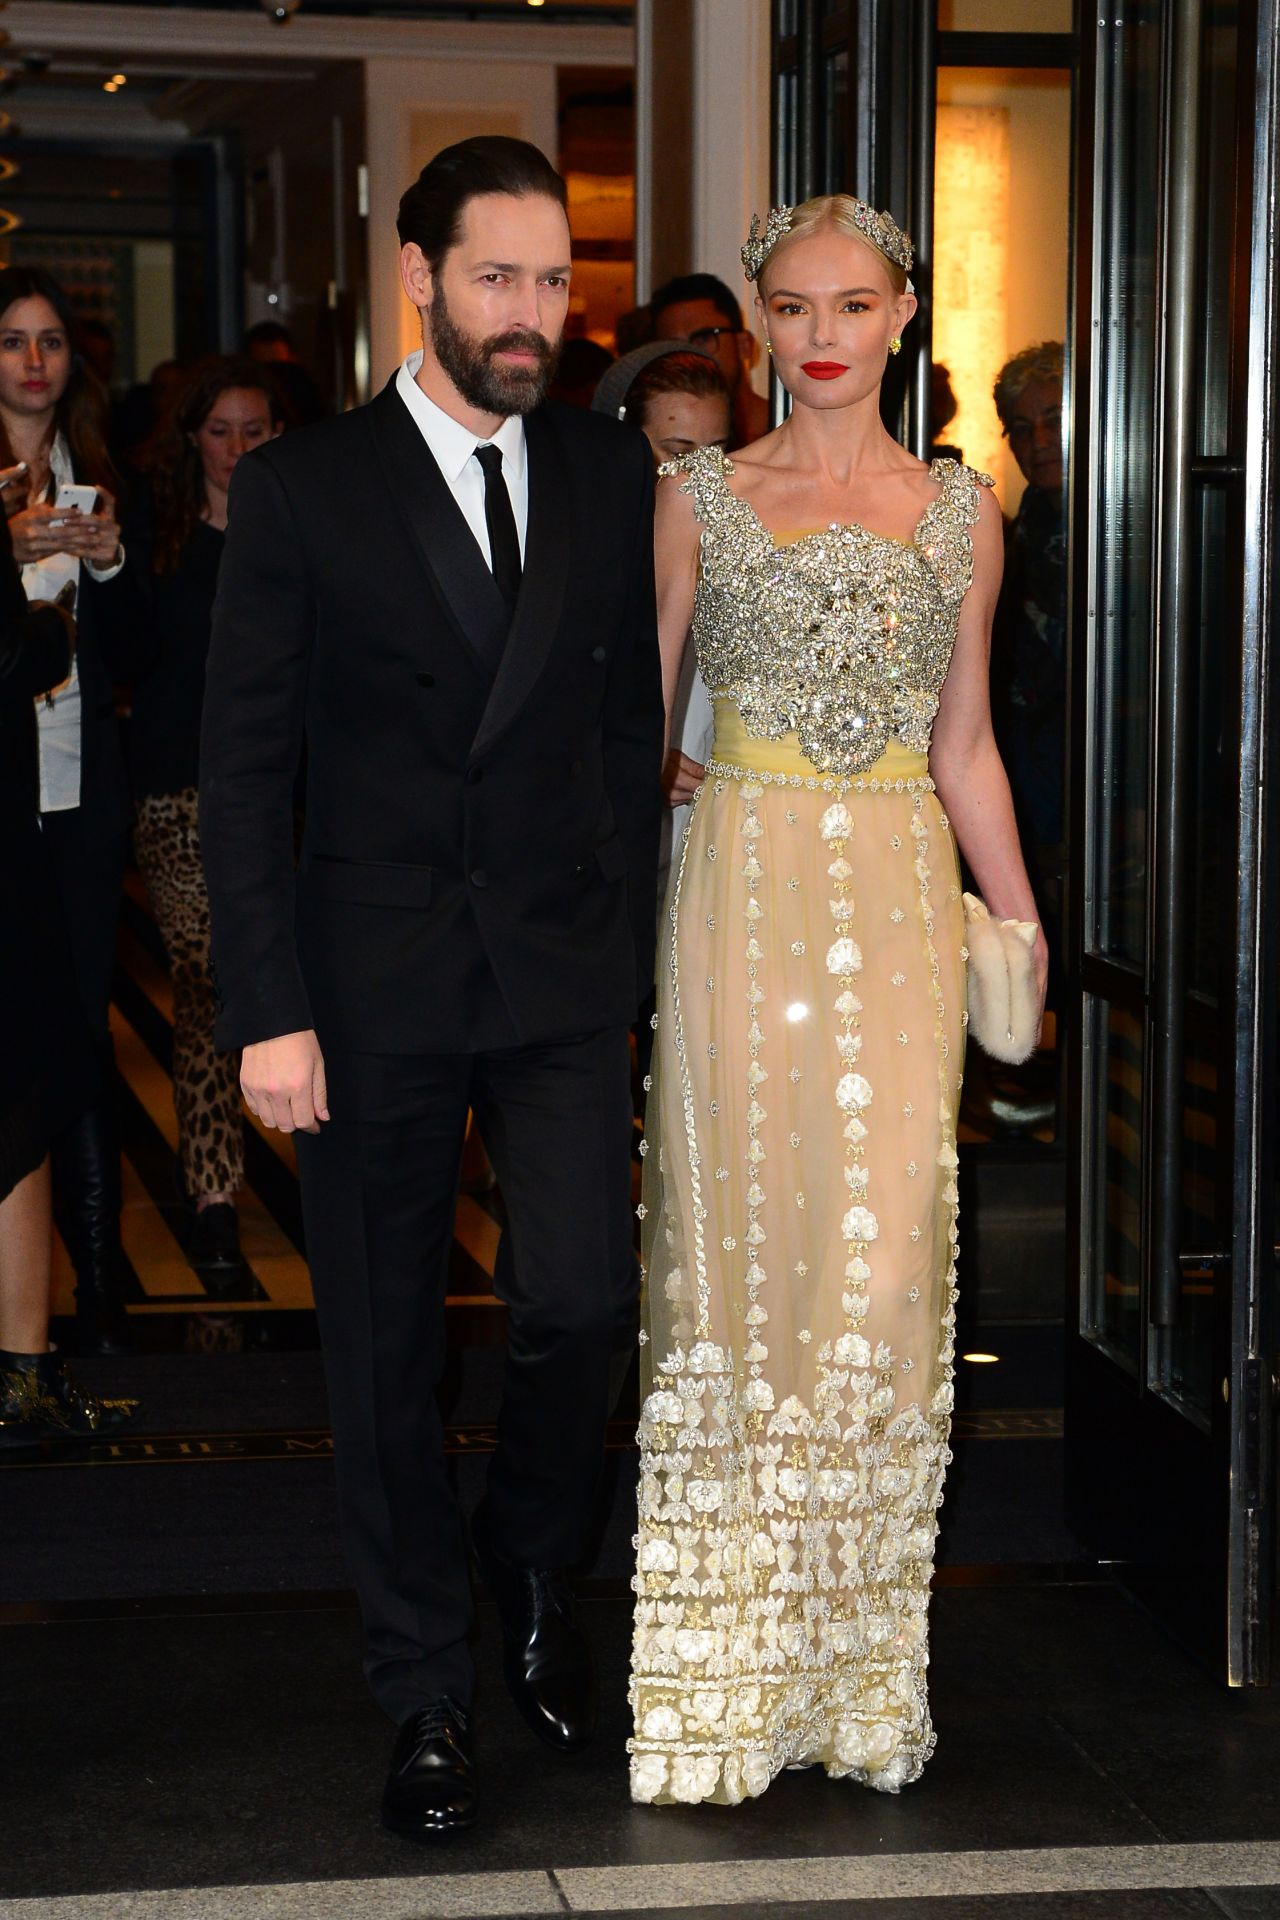 Kate Bosworth   Leaves the Mark Hotel to Walk the Red Carpet at the 2016  Met Gala in New York. Bosworth   Leaves the Mark Hotel to Walk the Red Carpet at the